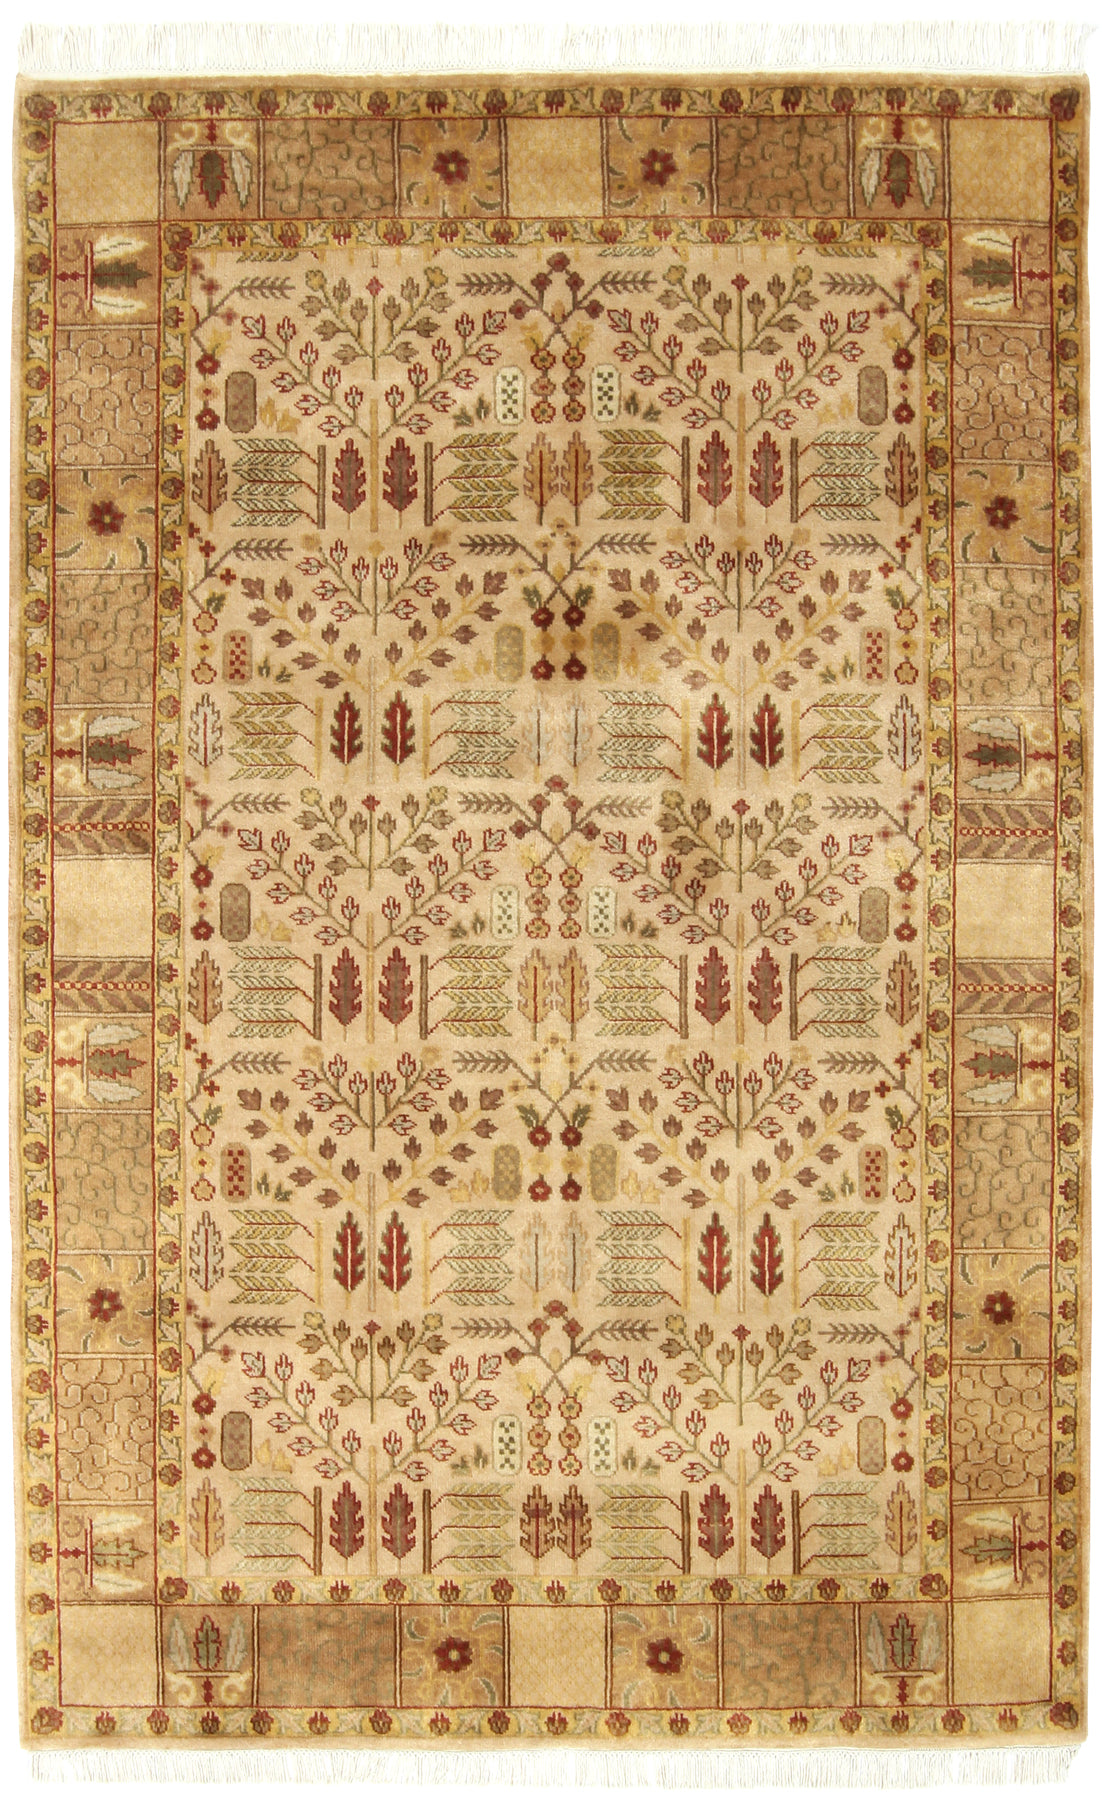 Garden Design Rug India-Turco Persian Rug Company Inc.